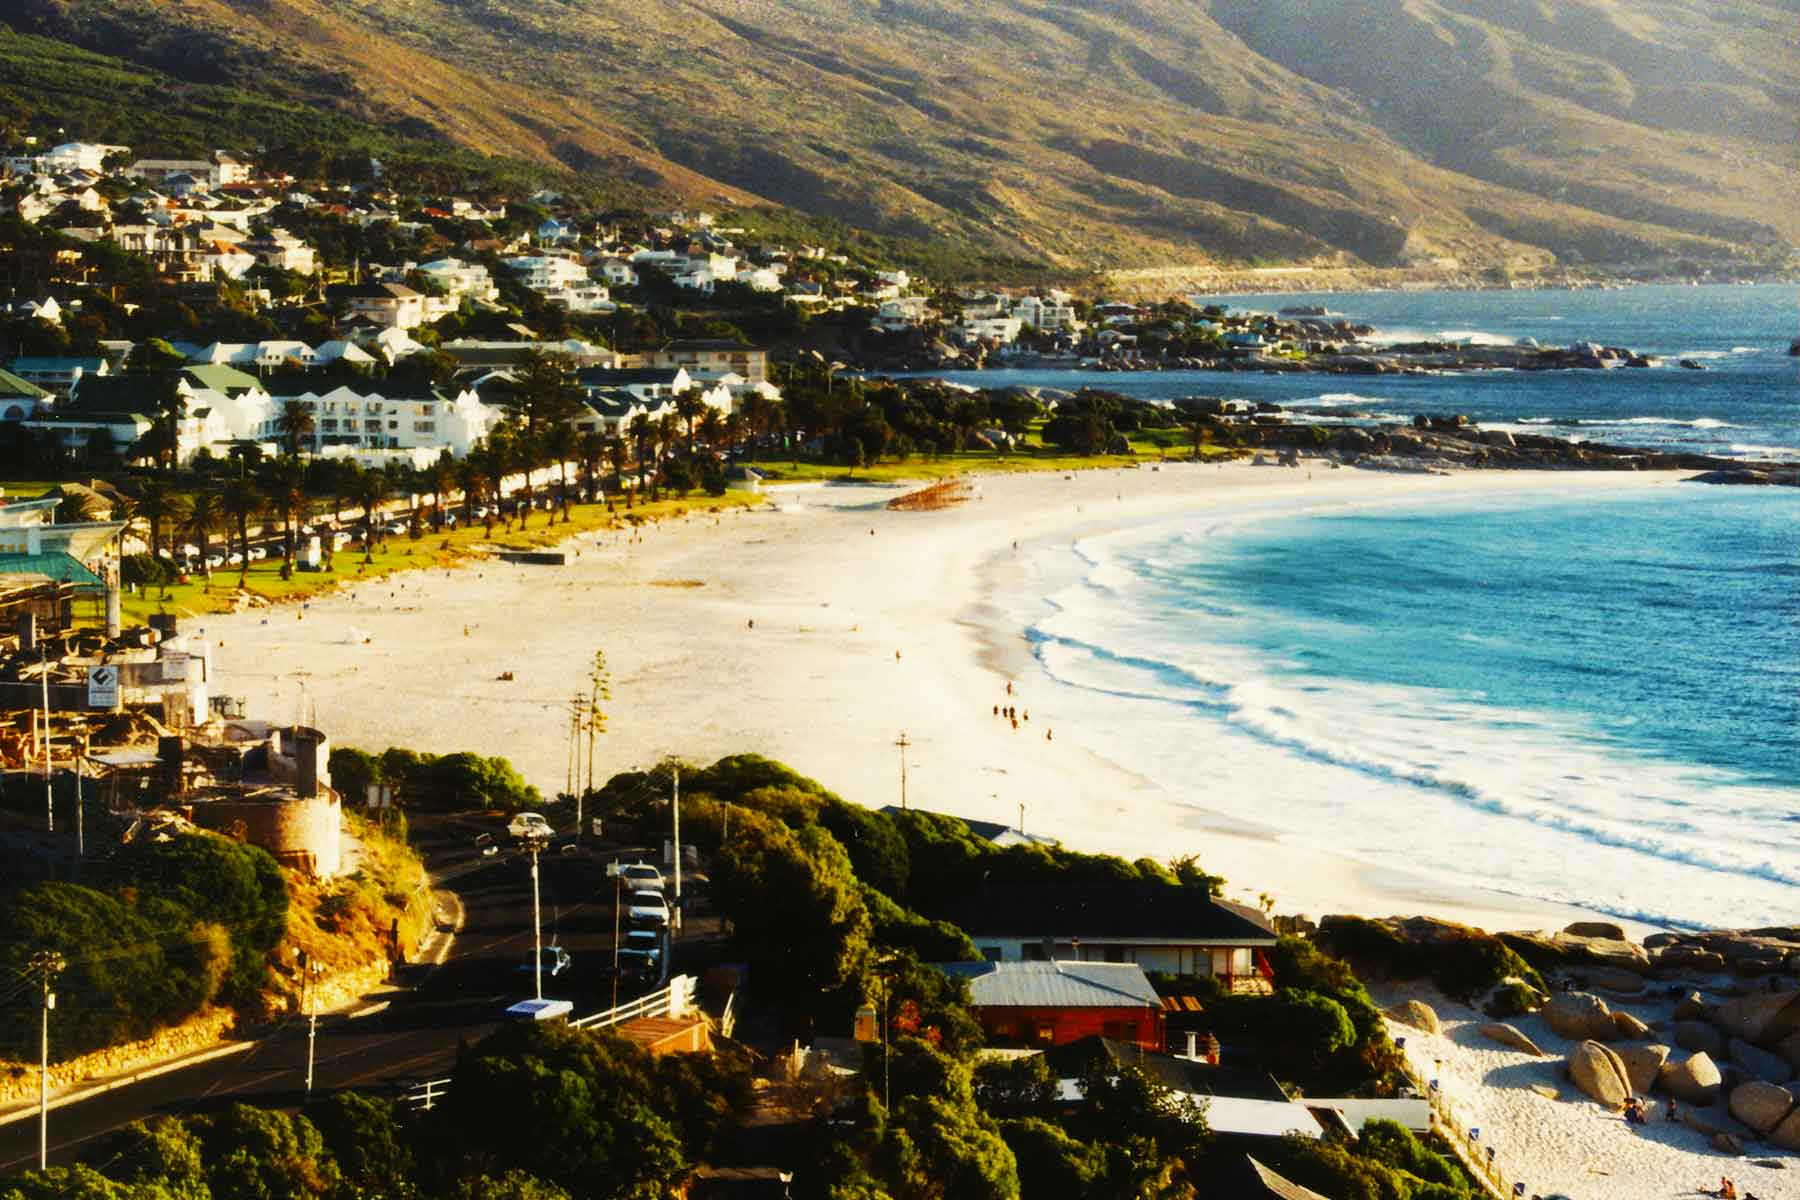 Camps Bay   Cape Town South Africa   Steven Andrew Martin PhD   Study Abroad Photo Journal